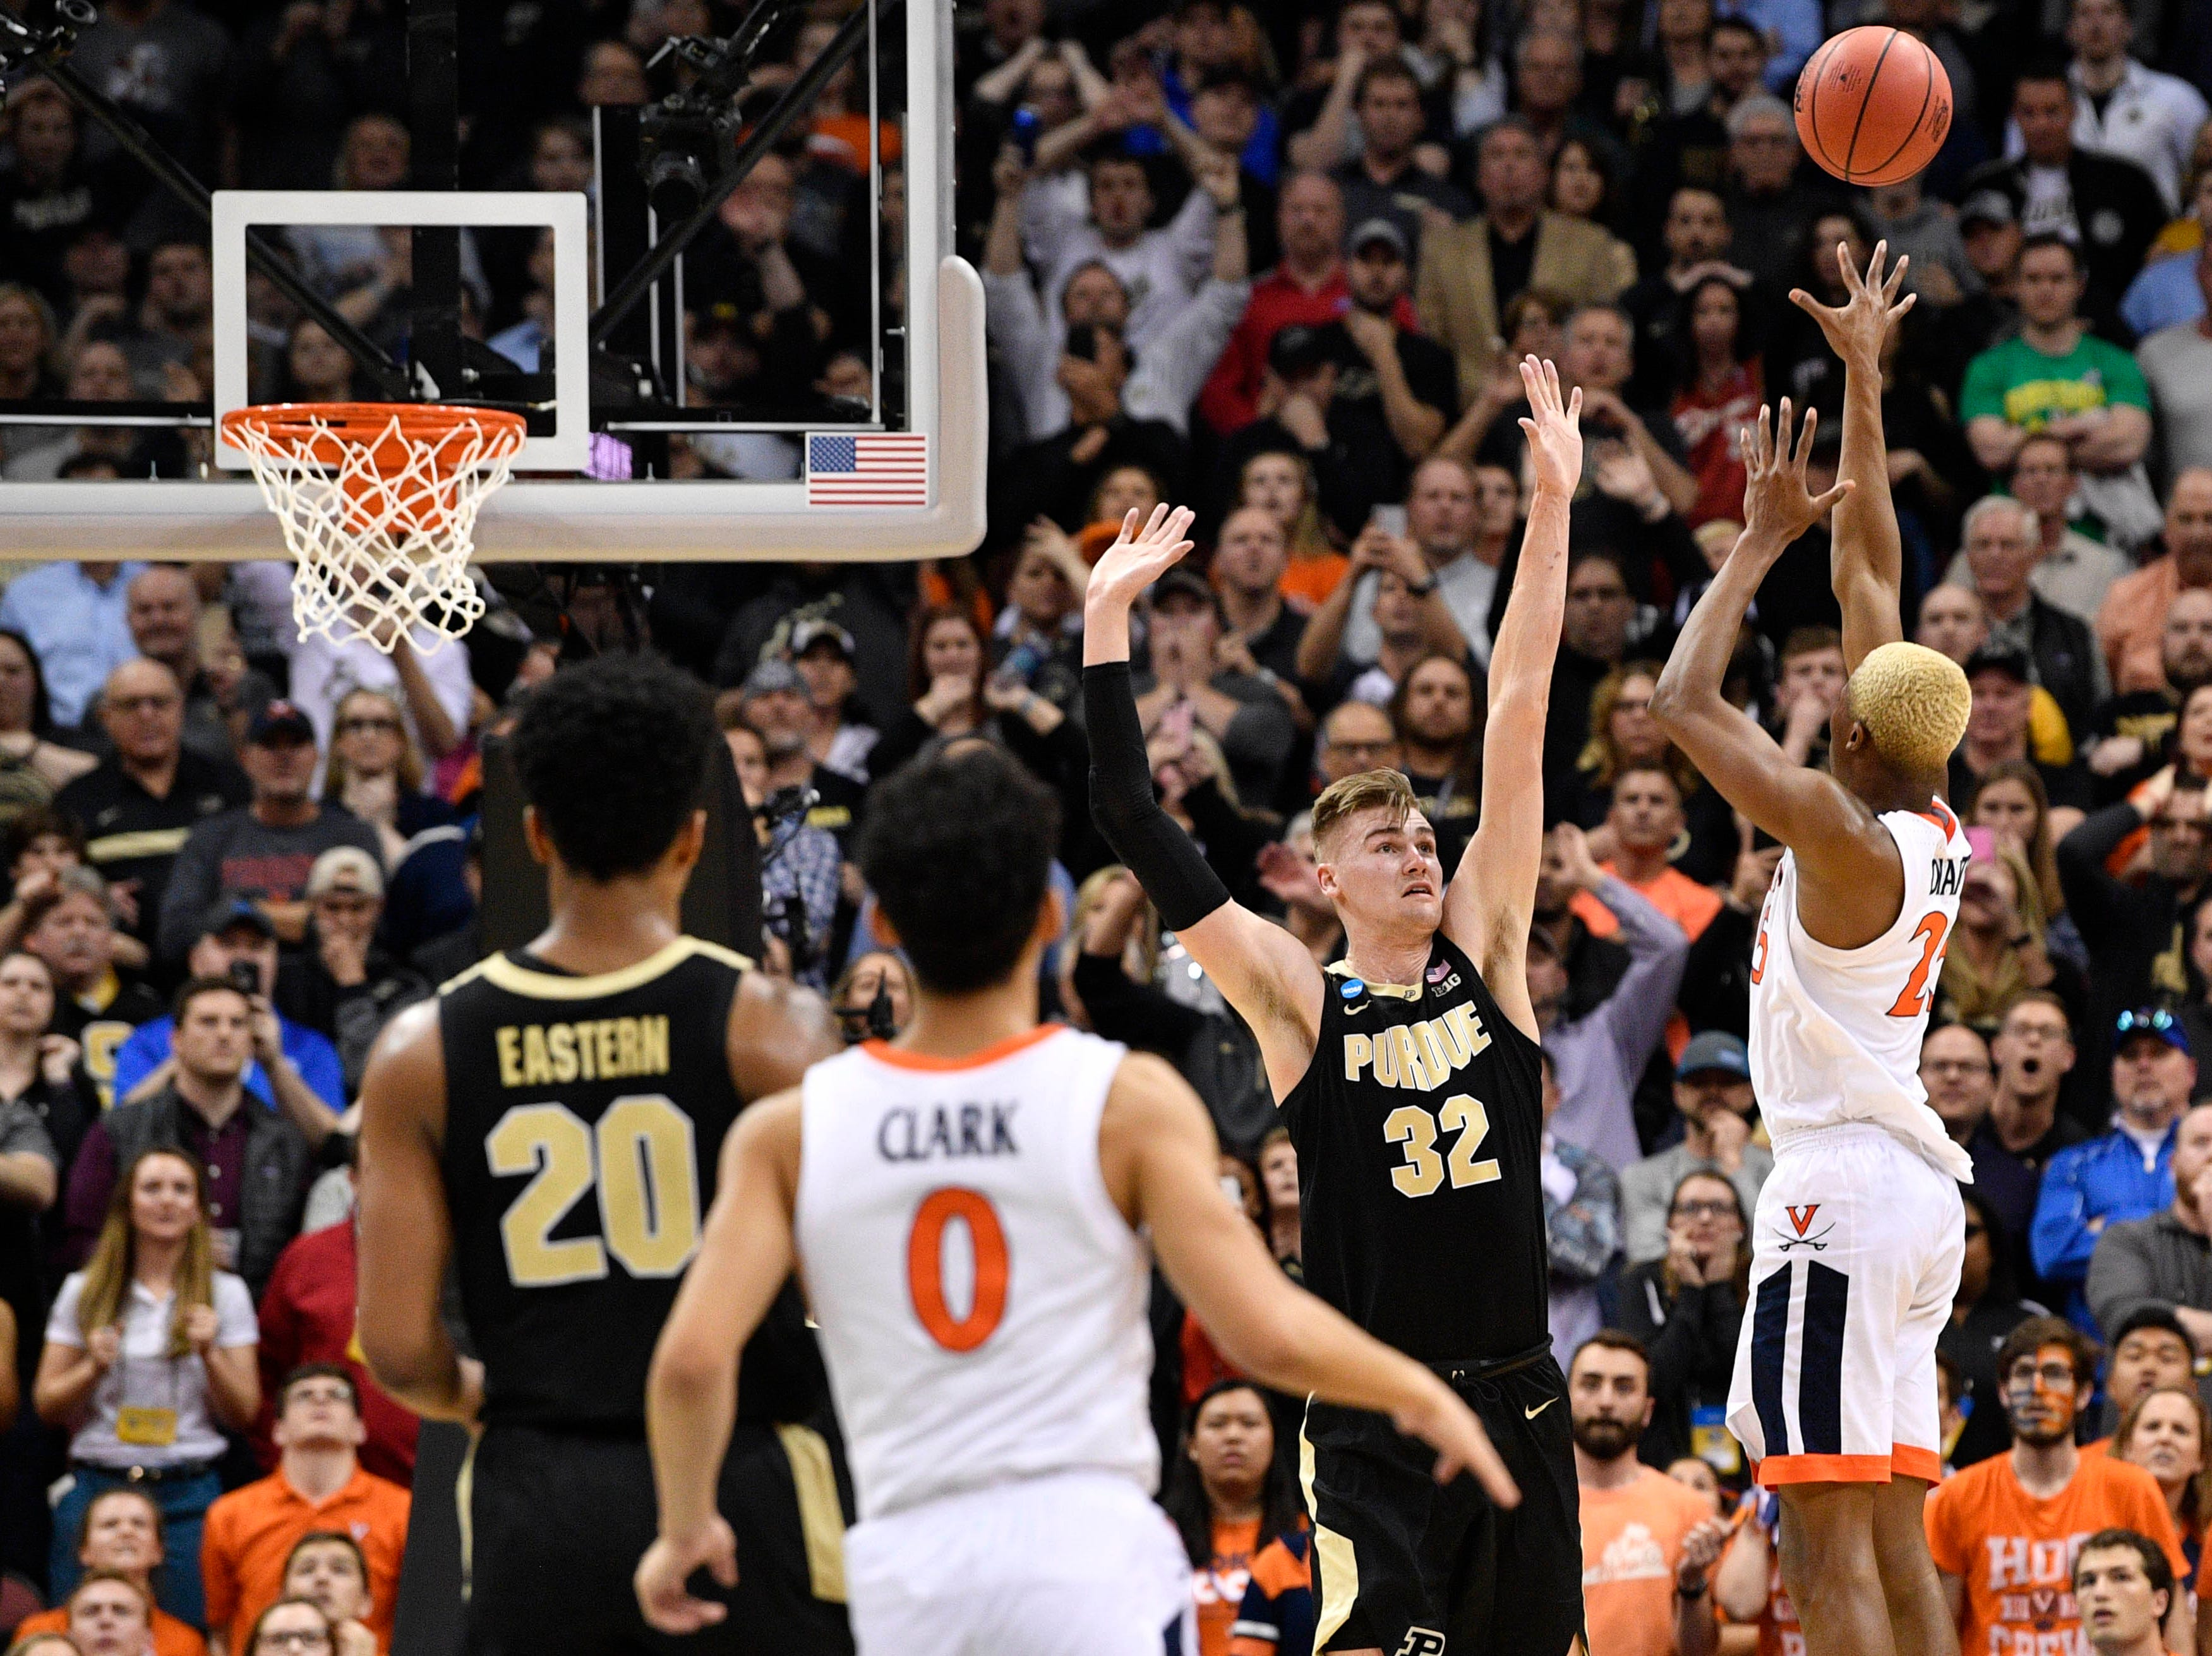 Mar 30, 2019; Louisville, KY, United States; Virginia Cavaliers forward Mamadi Diakite (25) makes a shot over Purdue Boilermakers center Matt Haarms (32) to tie the game as time expires during the second half in the championship game of the south regional of the 2019 NCAA Tournament at KFC Yum Center. Mandatory Credit: Jamie Rhodes-USA TODAY Sports